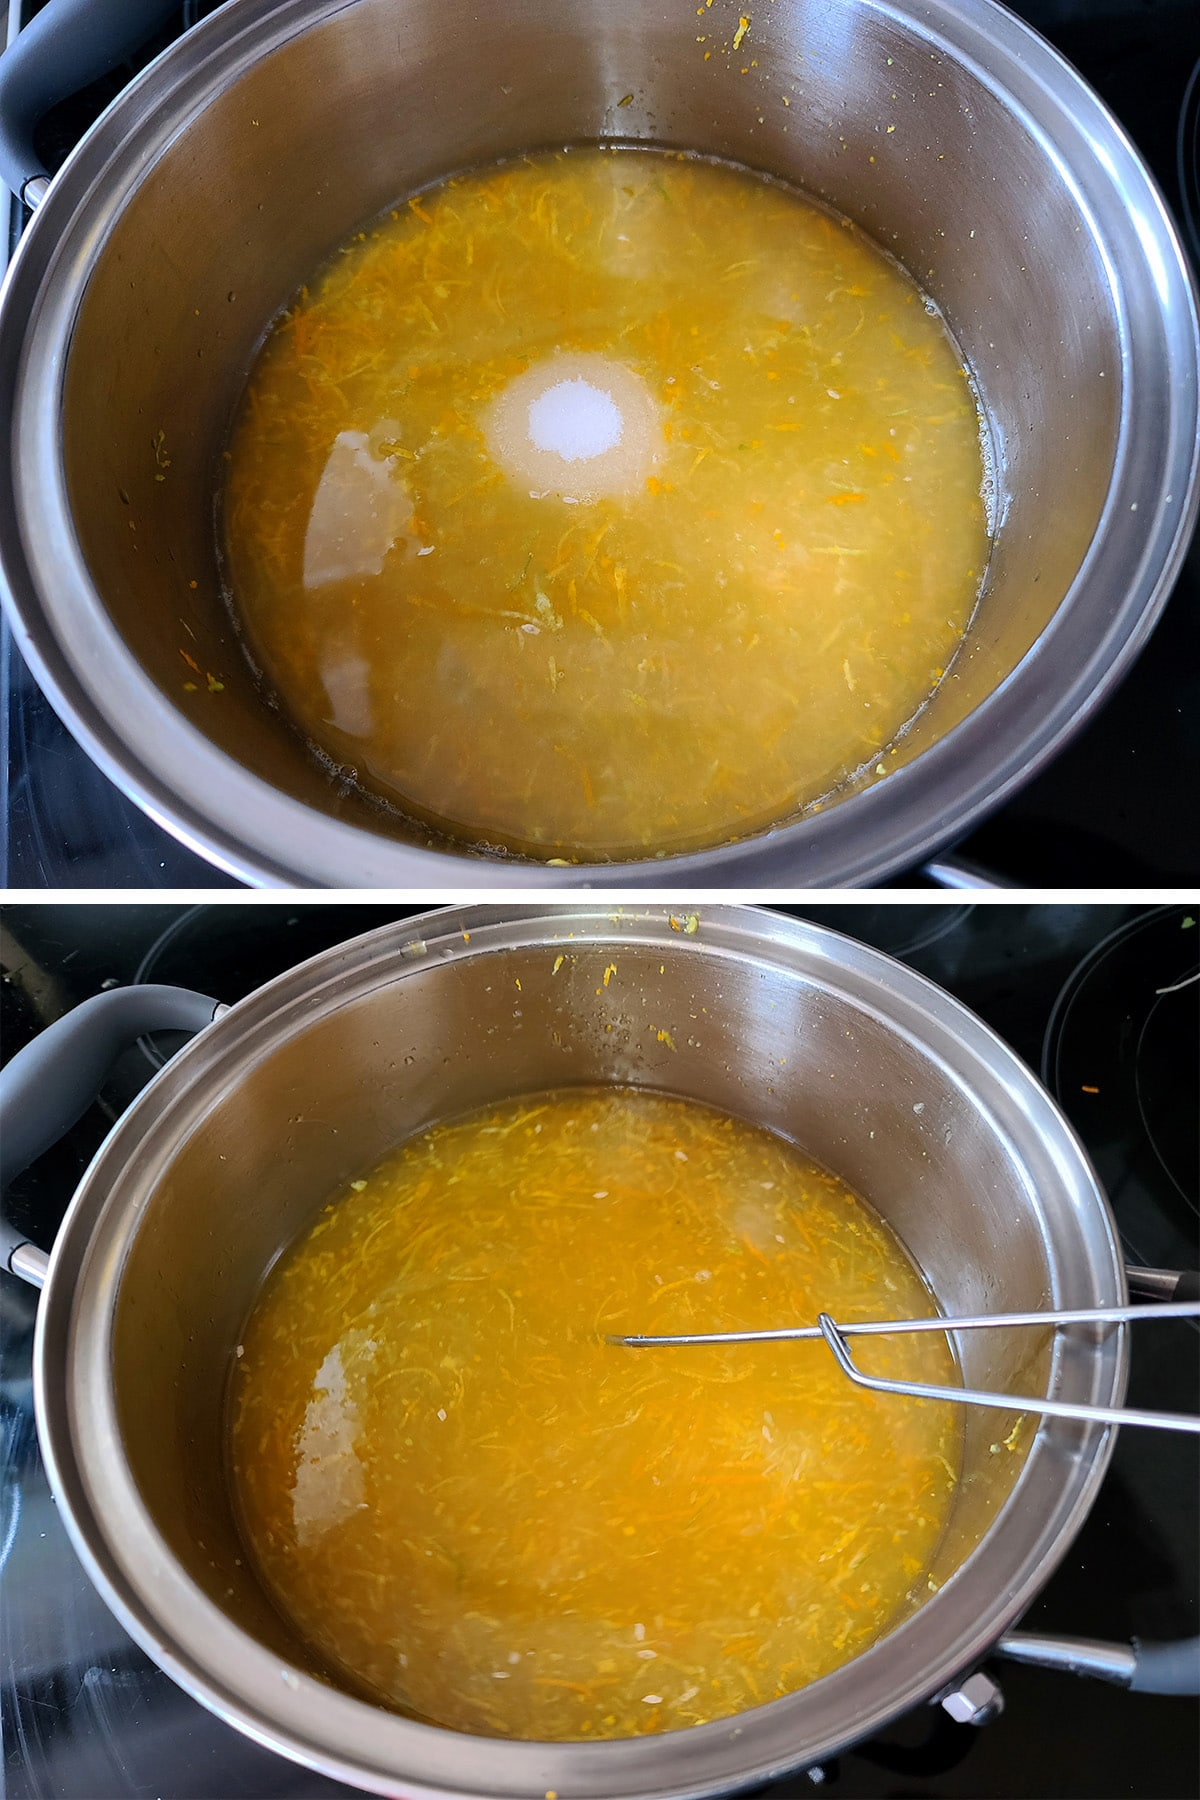 Water and sugar added to the pot of citrus juice.